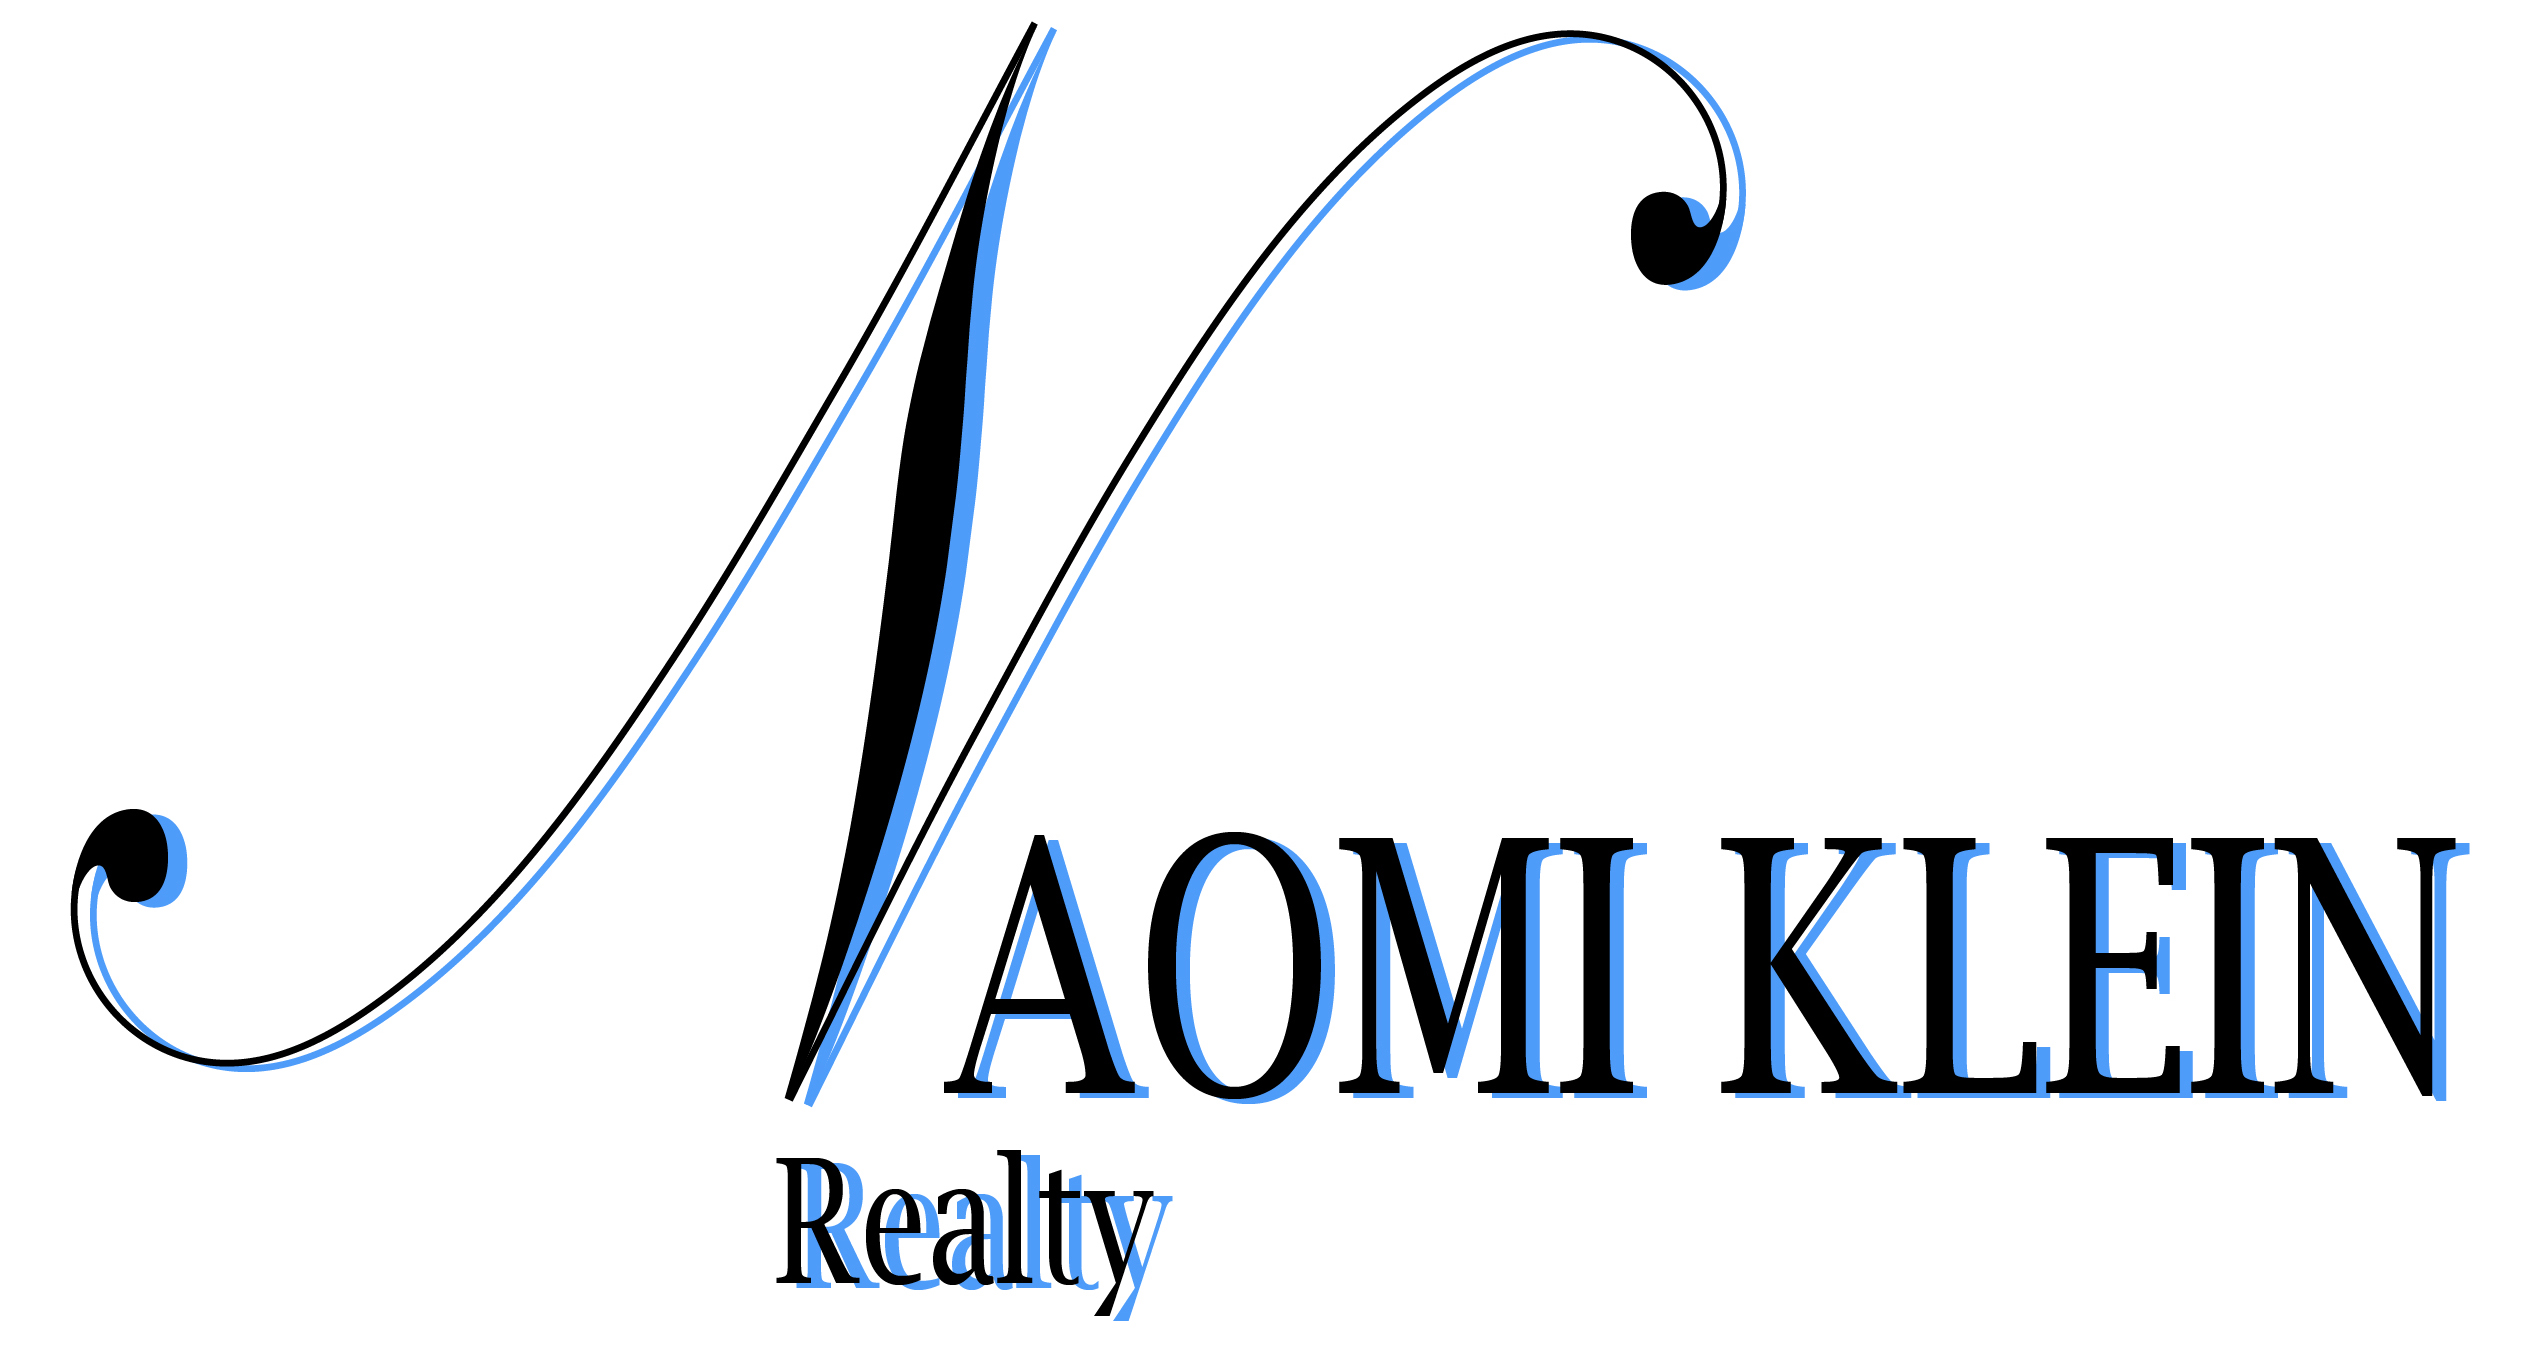 Naomi Klein Realty Inc.